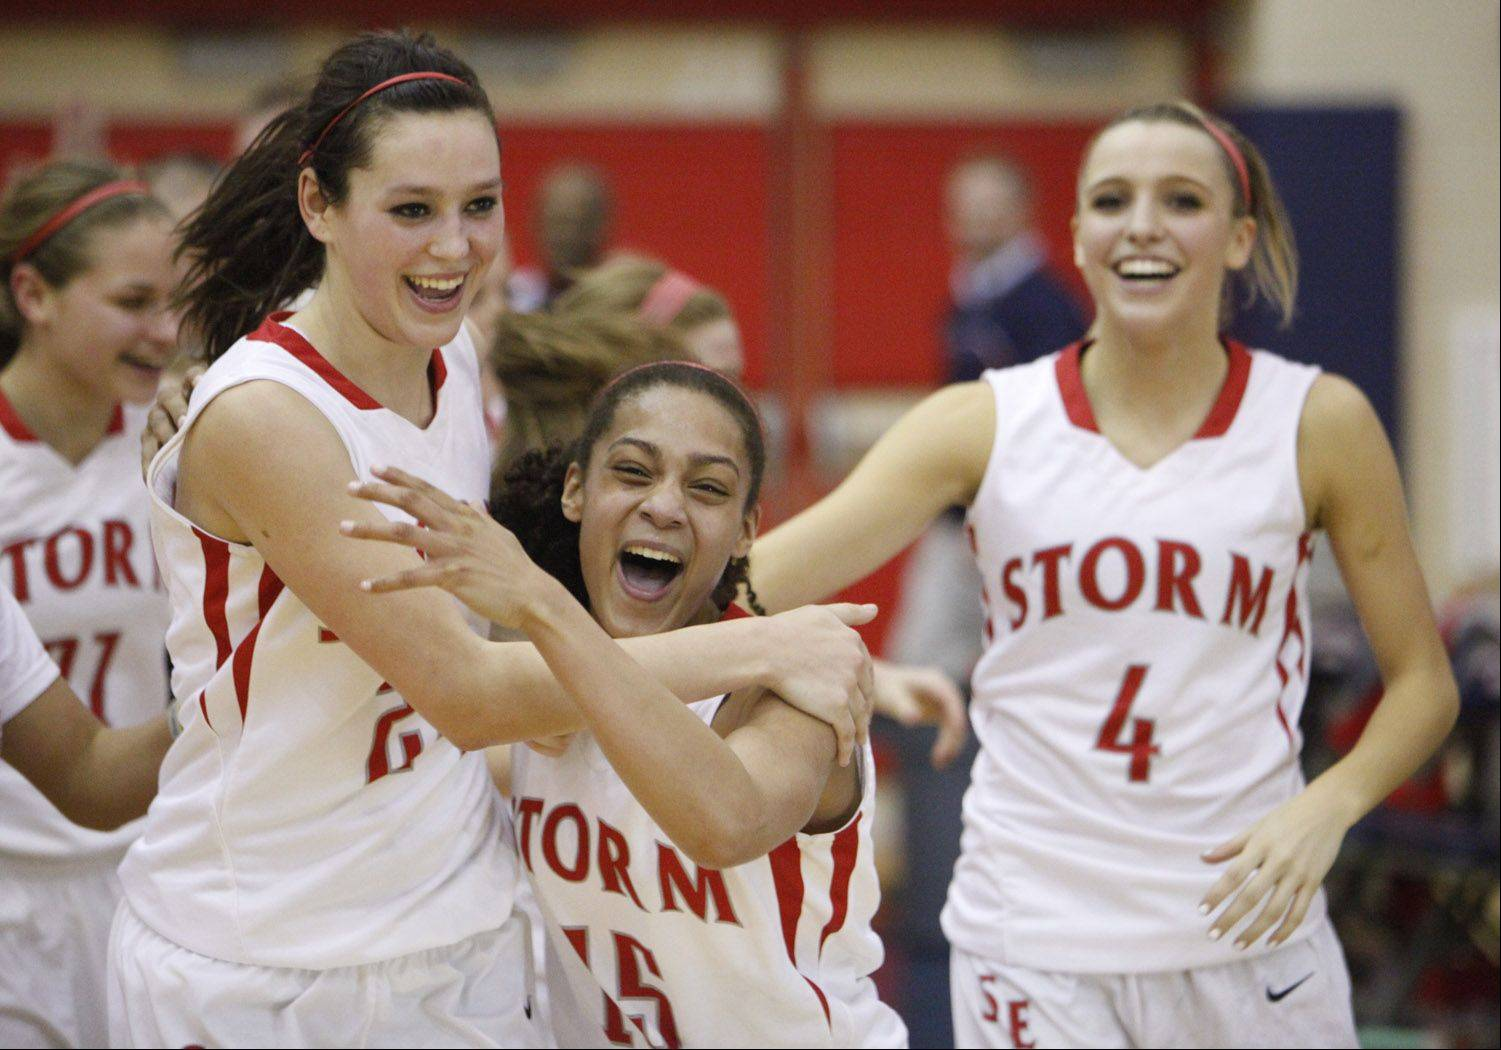 South Elgin teammates Kennede Miller, left, Becca Smith and Savanah Uveges celebrate their team's regional win Friday night in South Elgin.